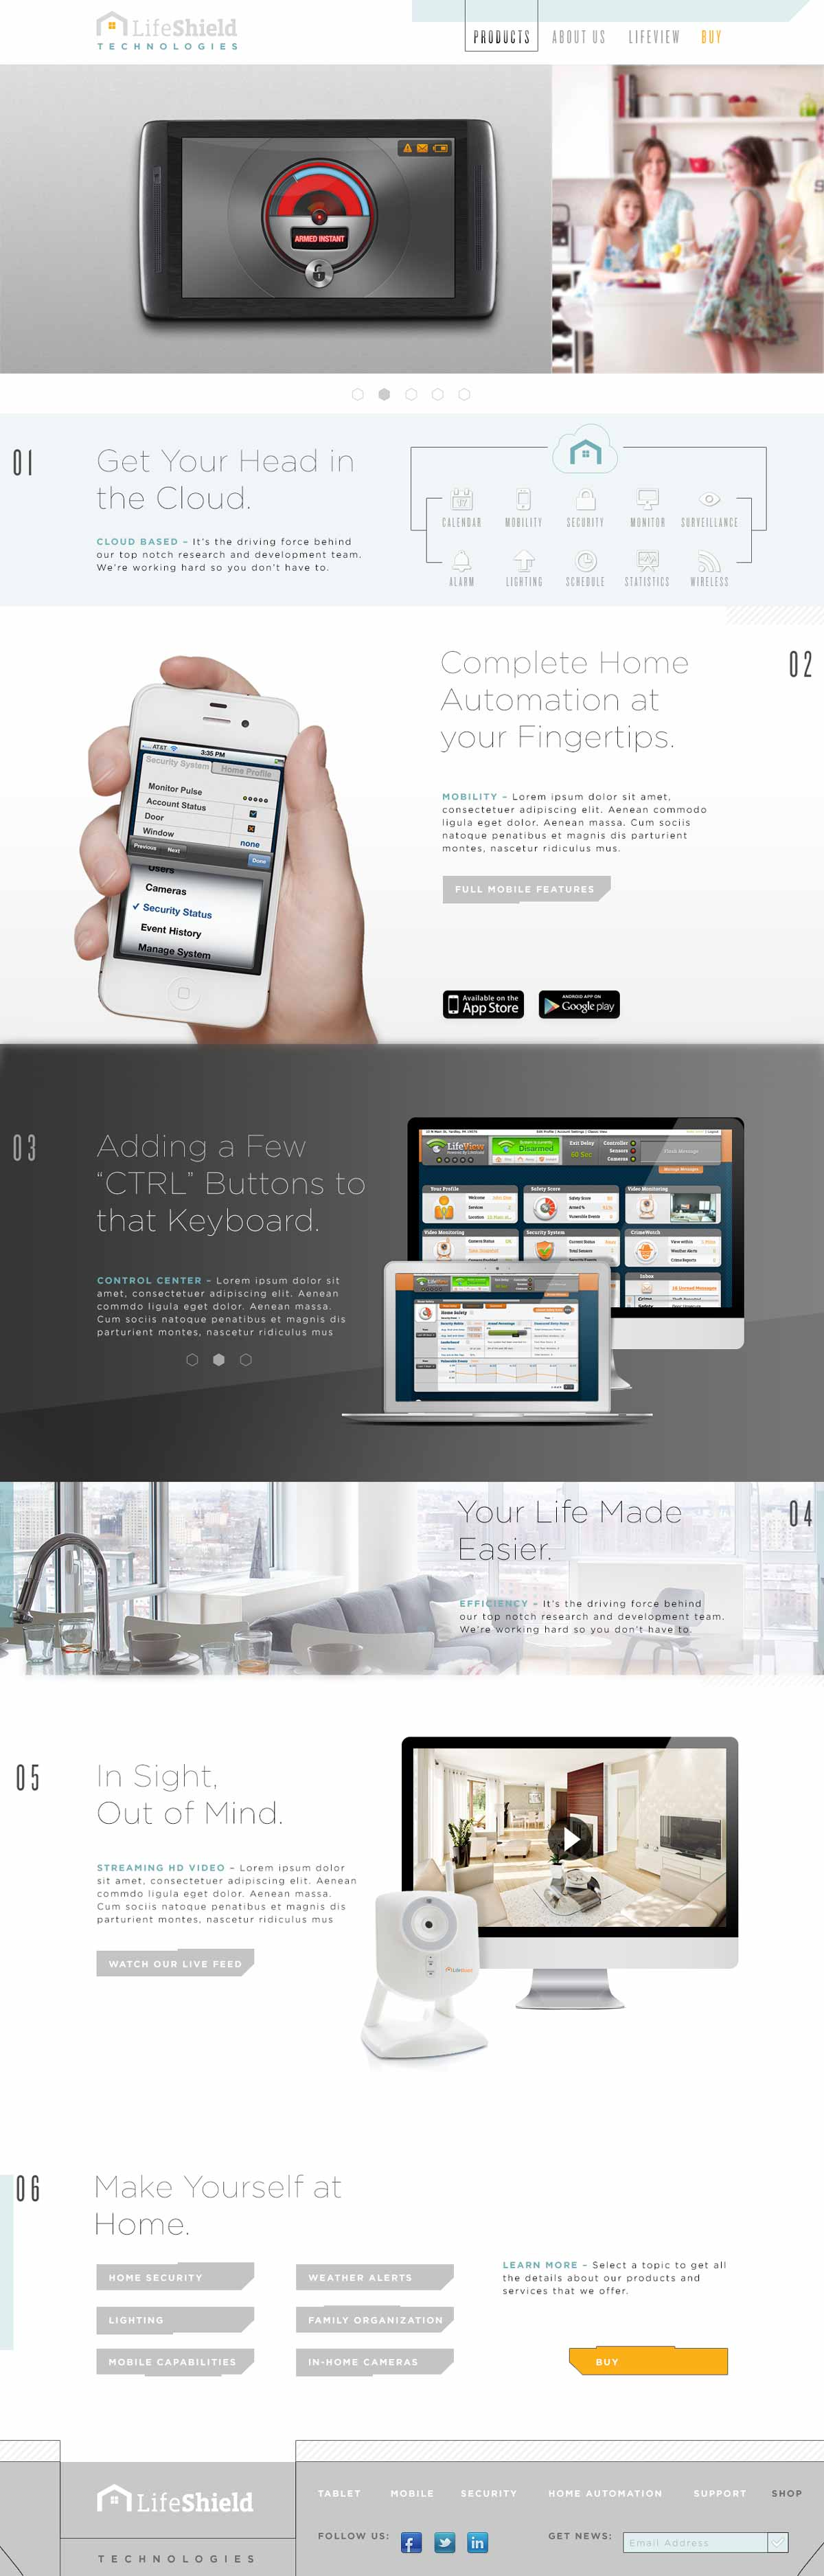 LifeShield home page design